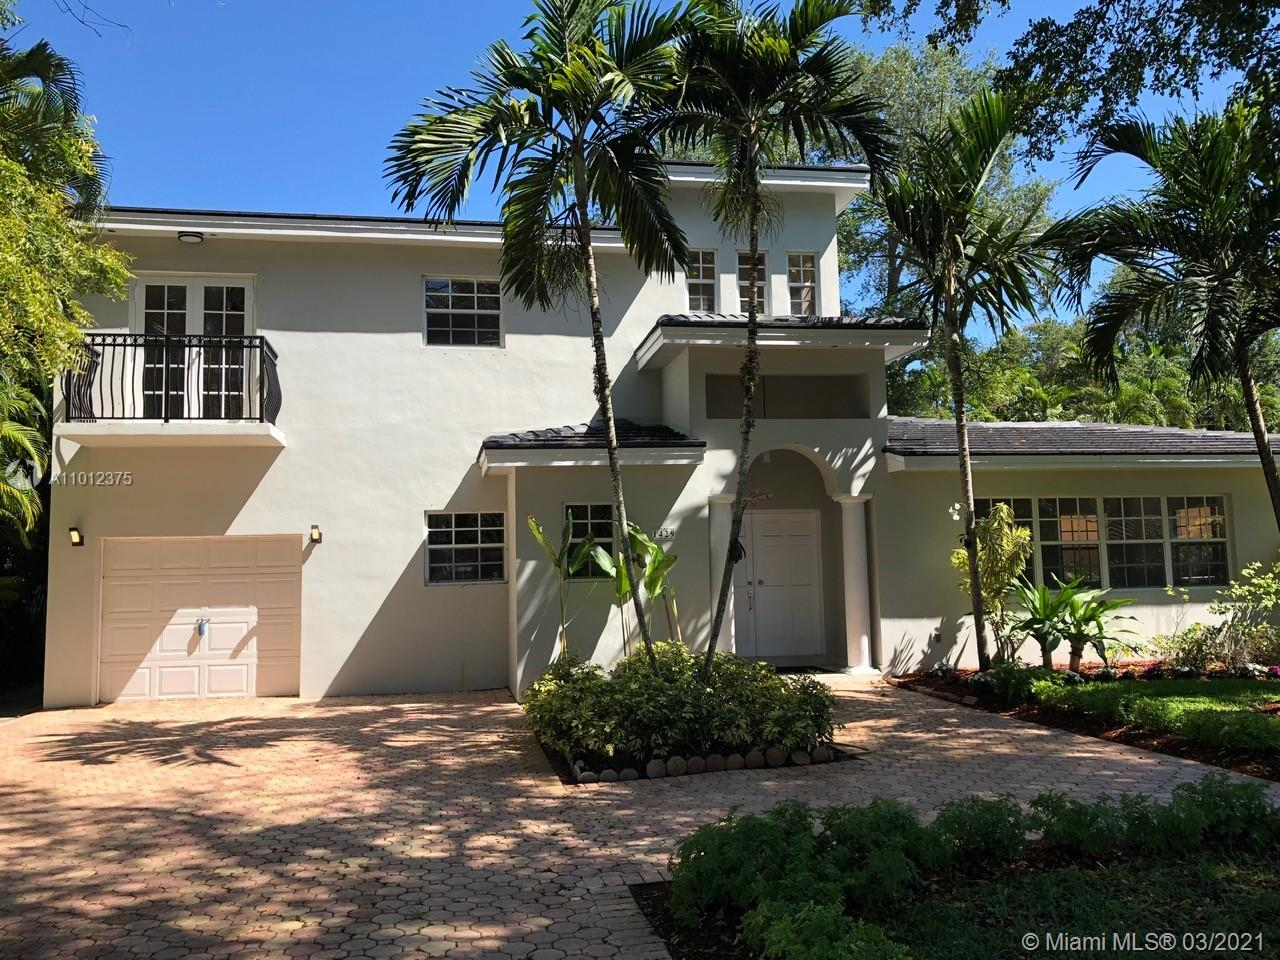 JUST UPDATED 2019, BEAUTIFUL HOME 4 BEDROOMS, 3.5 BATHS, 1 CAR GARAGE, REAL WOOD FLOORS EVERYWHERE, BRAND NEW FLAT TILE ROOF 2019, 2 STORY IN THE HEART OF CORAL GABLES AND NEAR THE UNIVERSITY OF MIAMI, LOTS OF SPACE IN THE FRONT TO PARK CARS (8), LARGE KITCHEN WITH CALACATTA QUARTZ COUNTER-TOPS, HUGE LIVING ROOM WITH LOTS OF WINDOWS, SPLIT PLAN, MASTER BEDROOM ON THE SECOND FLOOR WITH LARGE WALK-IN CLOSET AND BALCONY, OTHER 3 BEDROOMS DOWNSTAIRS, SPACE FOR POOL (PLANS ATTACHED); HOUSE IS RENTED UNTIL 7/31/2021.